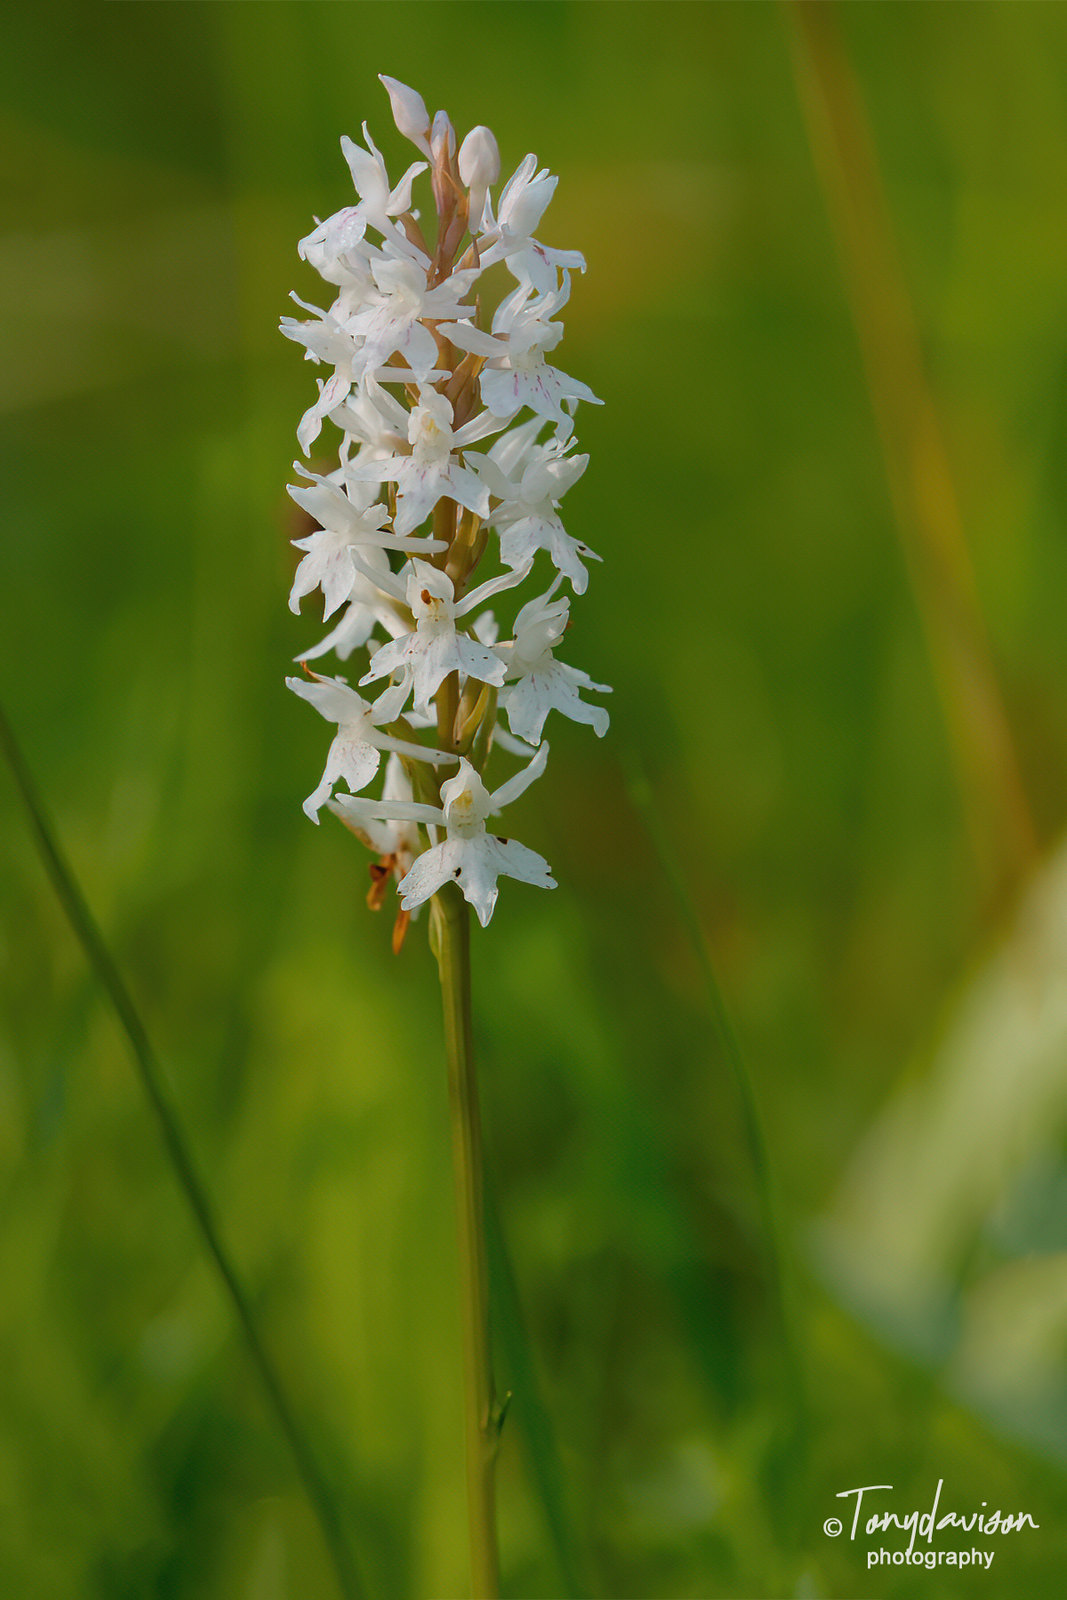 Common Spotted Orchid - a white variety